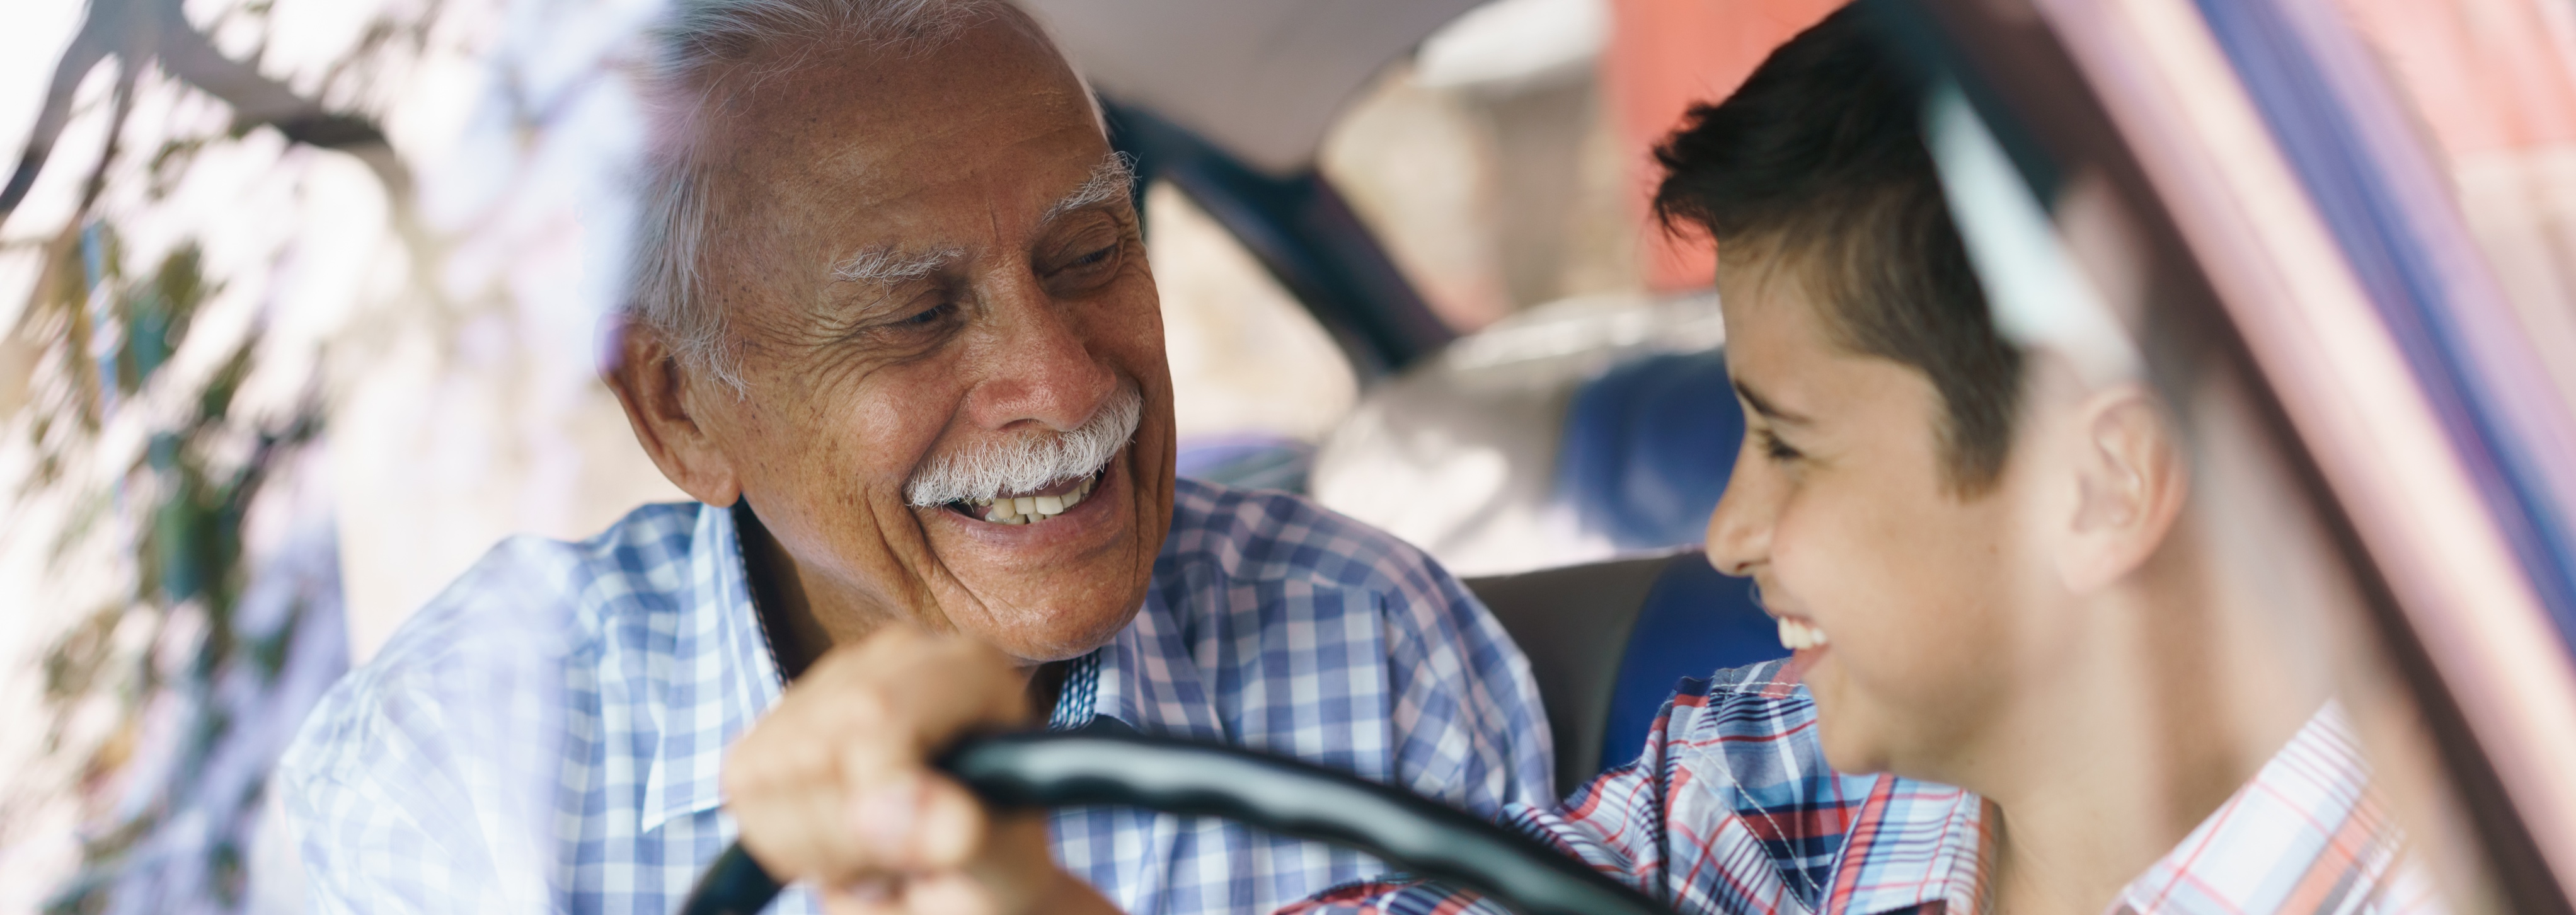 Family and Generation gap. Old grandpa spending time with his grandson and teaching him to drive. The boy holds the volante of a vintage car from the 60s. They both smile happy looking each other.